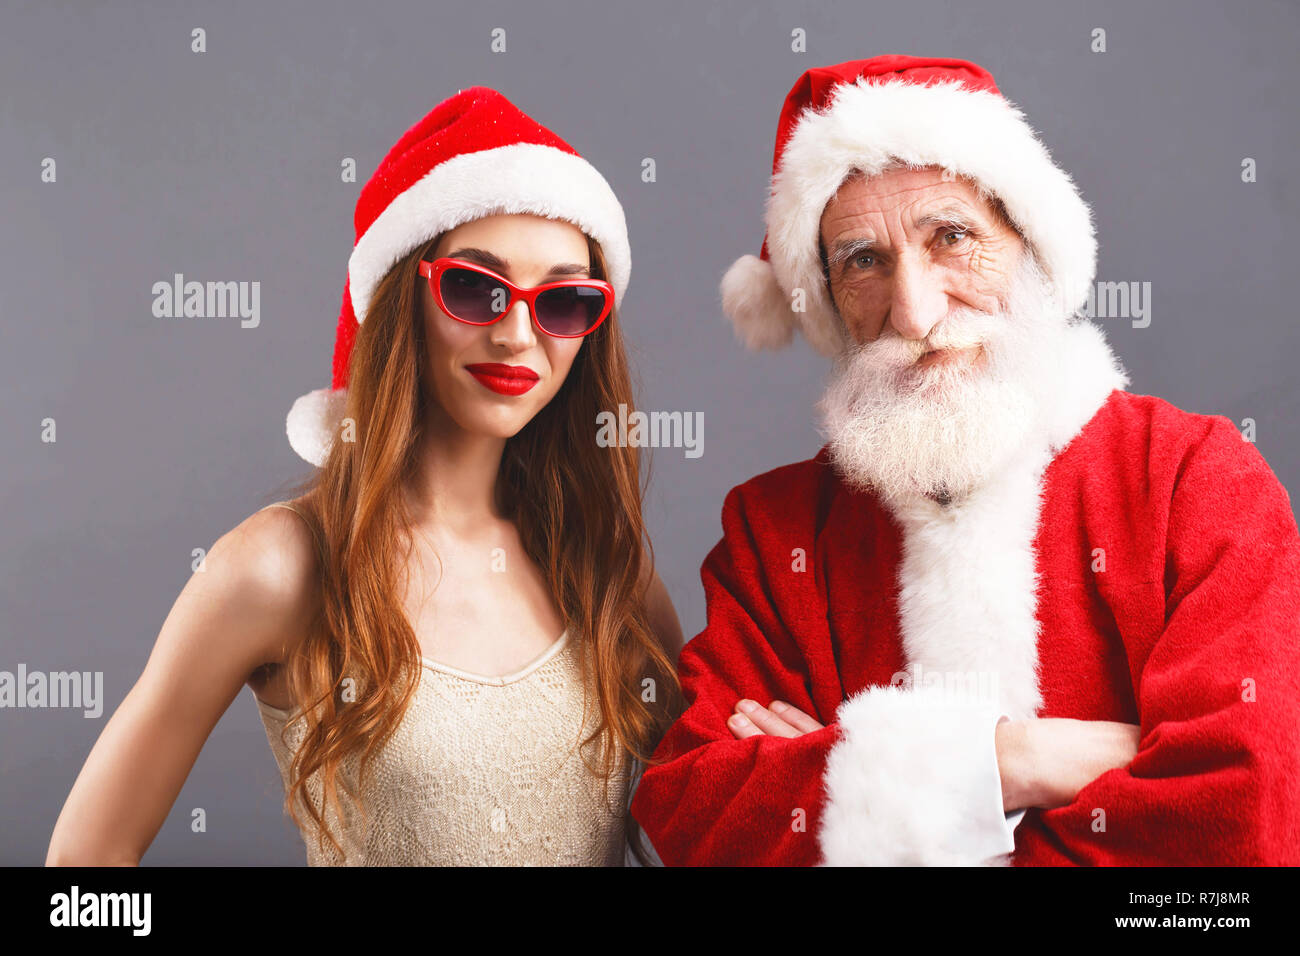 ed658bf1684e7 Santa Claus and young mrs. Claus wearing Santa hat and sunglasses standing  on the gray